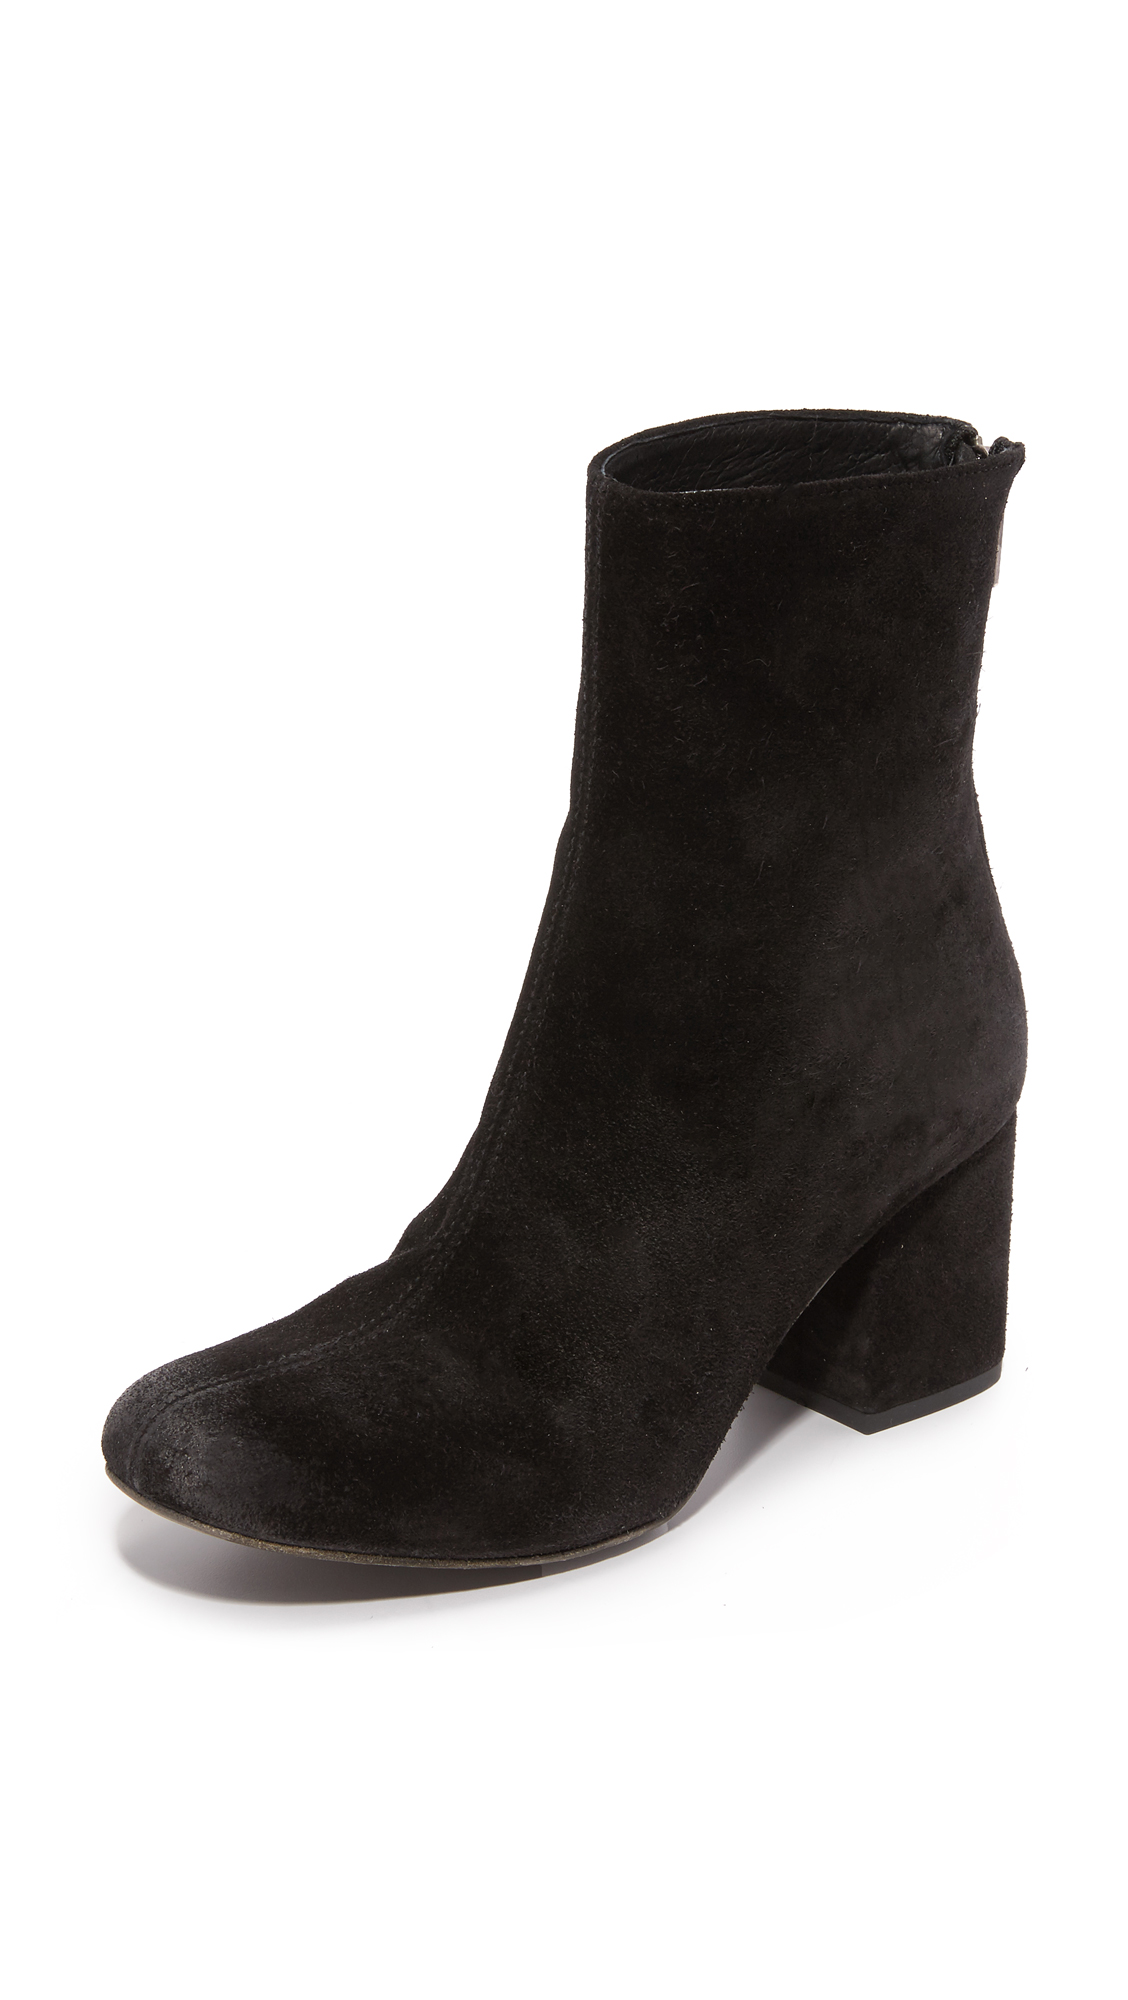 Free People Cecile Ankle Booties - Black